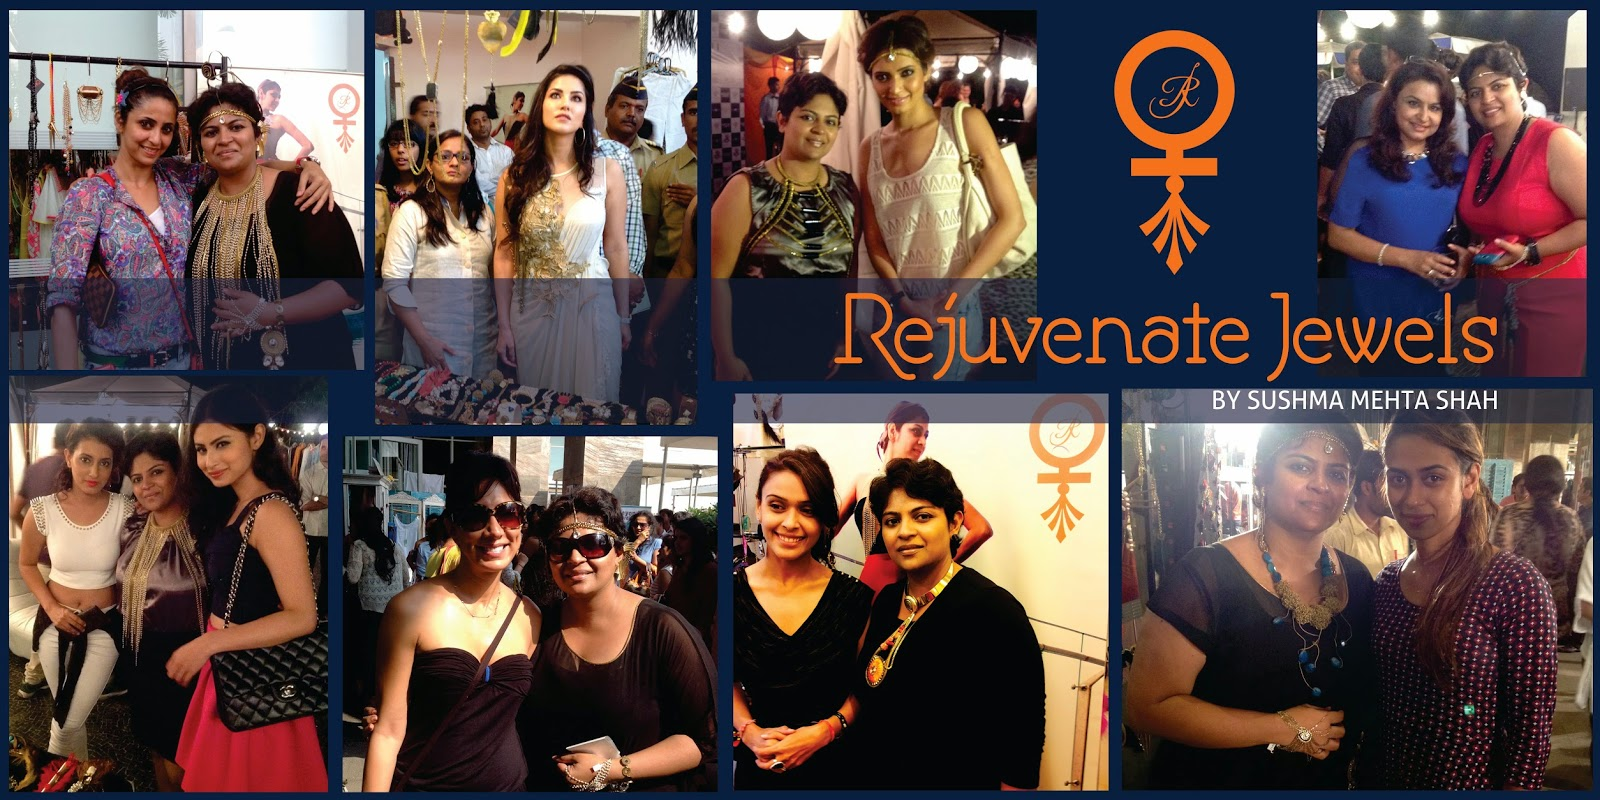 Celebrity Clients of Rejuvenate Jewels